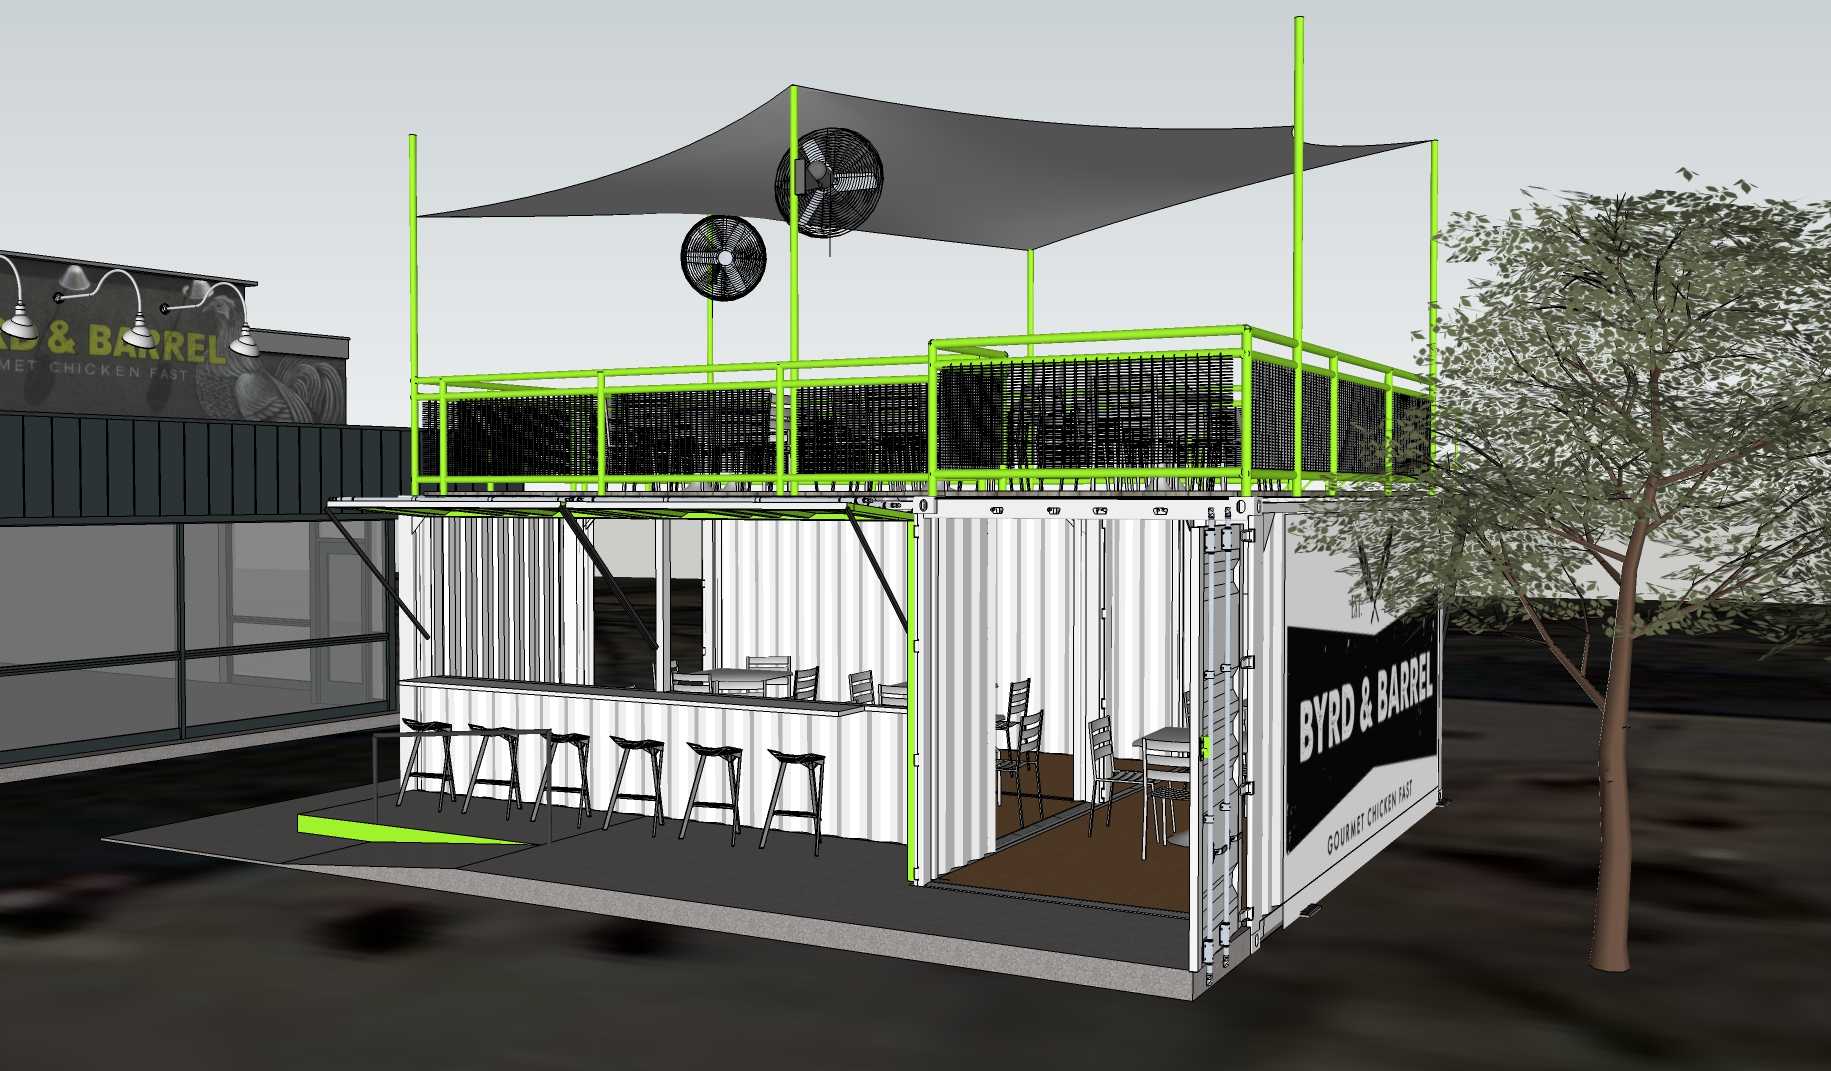 Byrd & Barrel Plans Expansion with Containerized Outdoor Seating